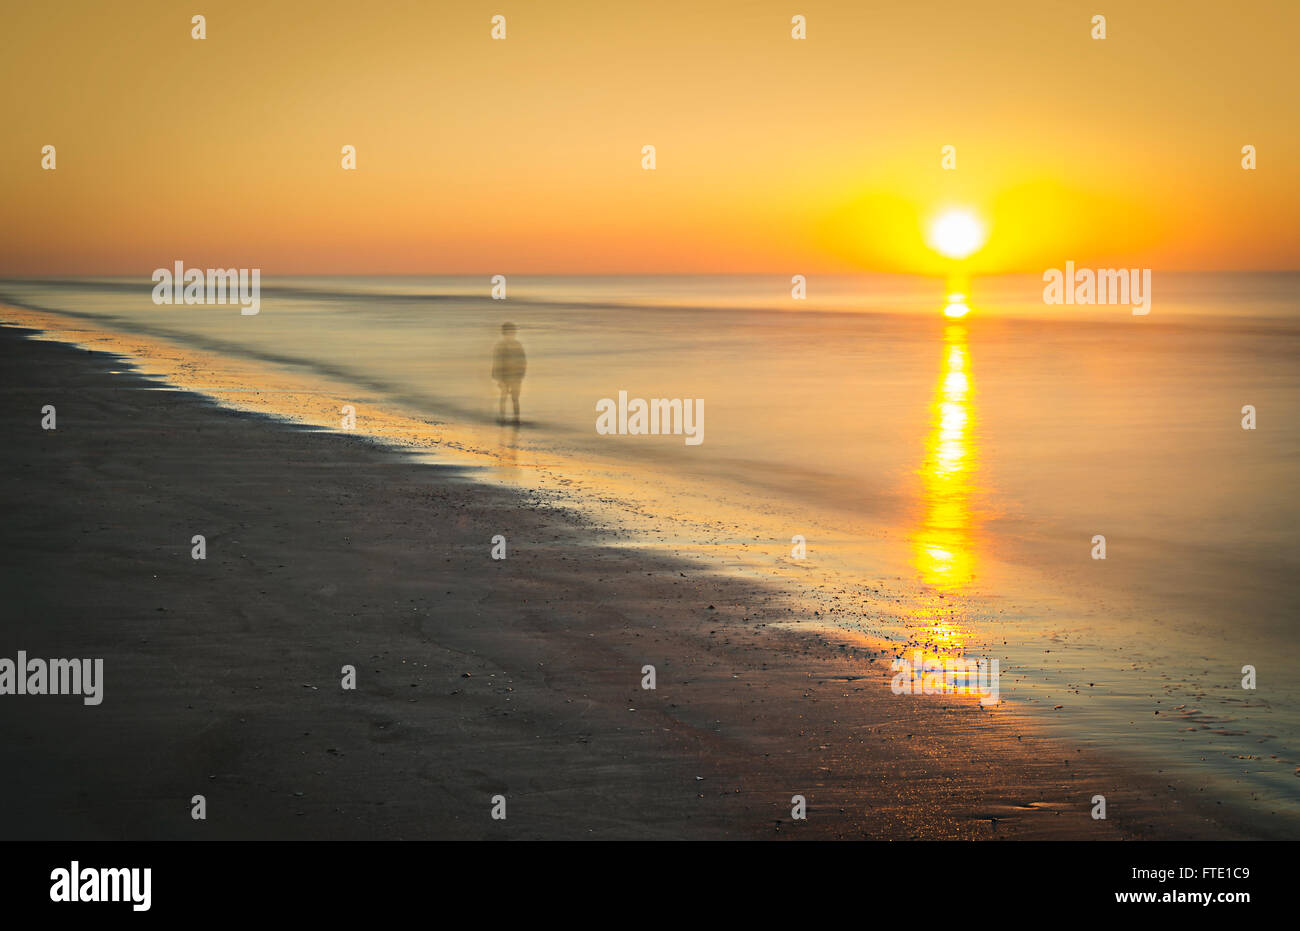 Sad Ghostly Person Walking On Beach At Sunset - Stock Image